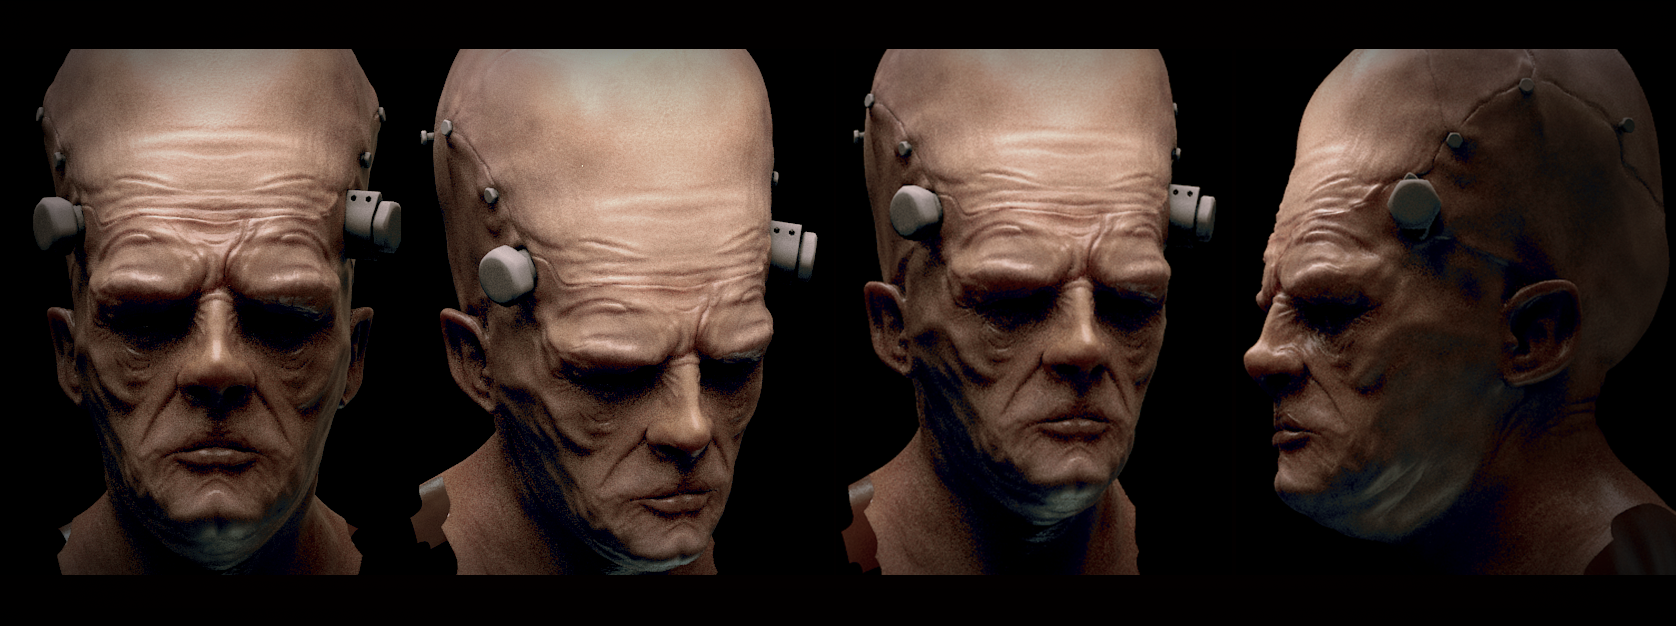 Wotking on a vray skin shader for an ongoing project I'm working on